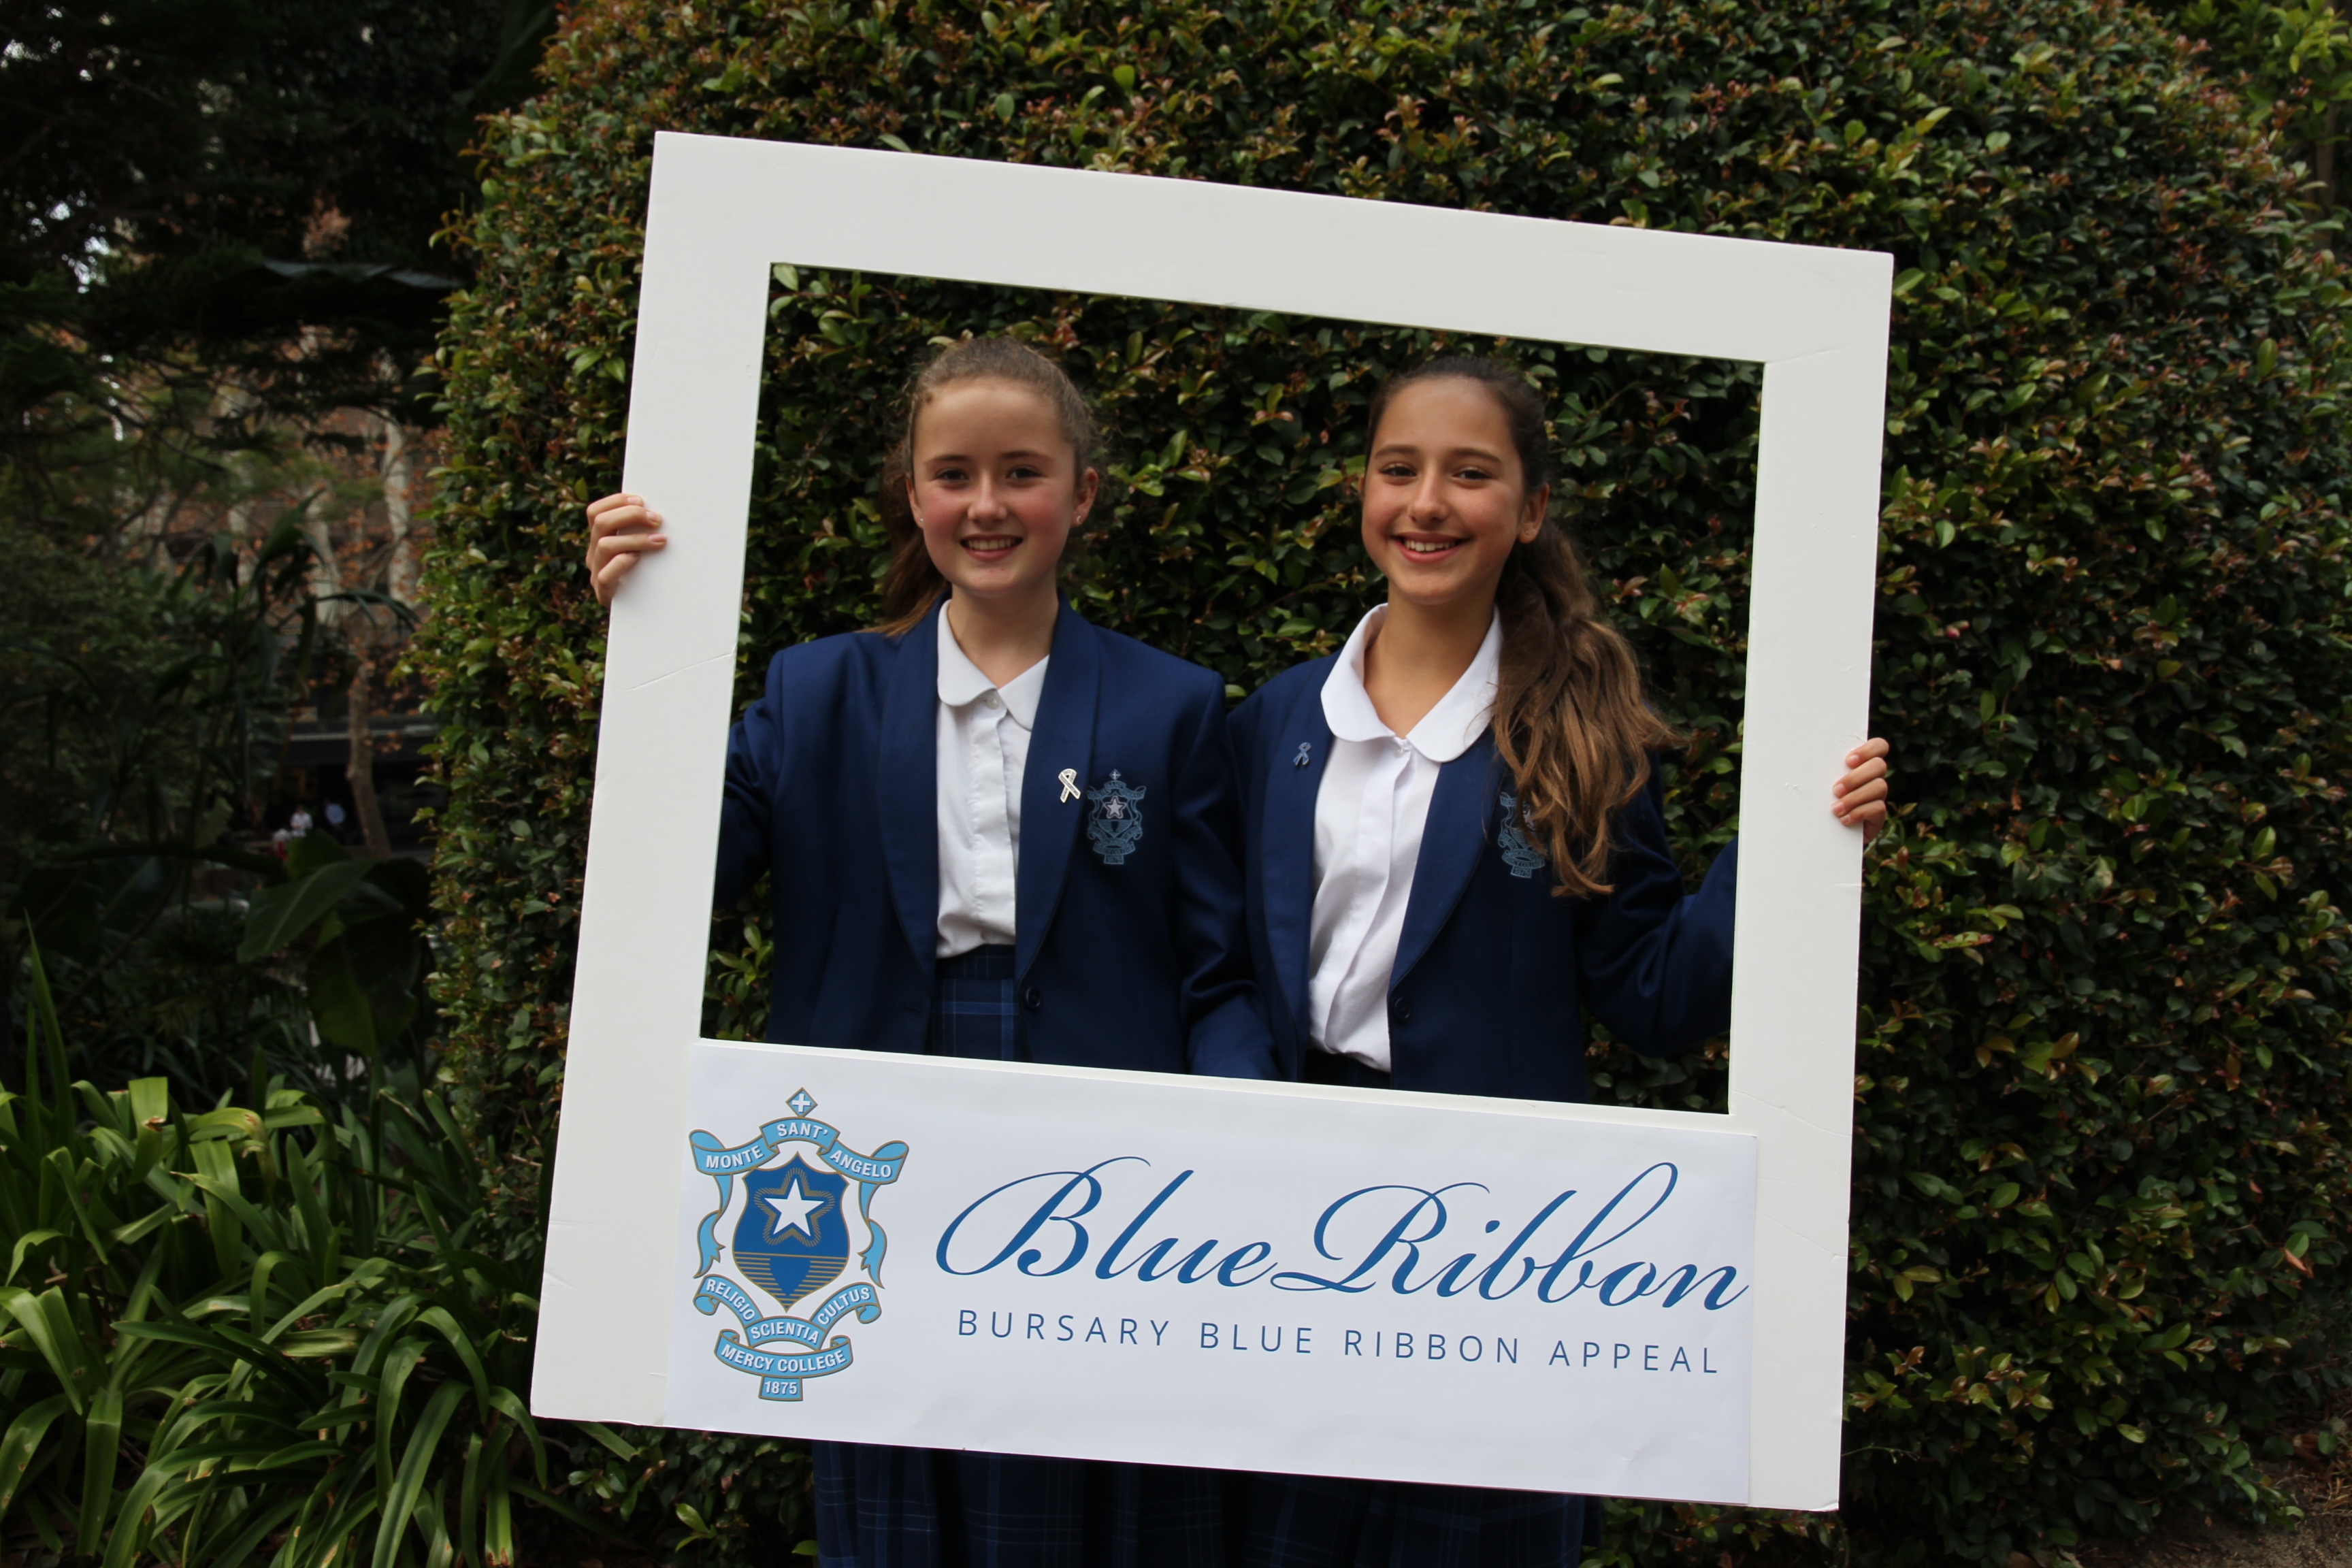 Blue Ribbon Bursary Appeal